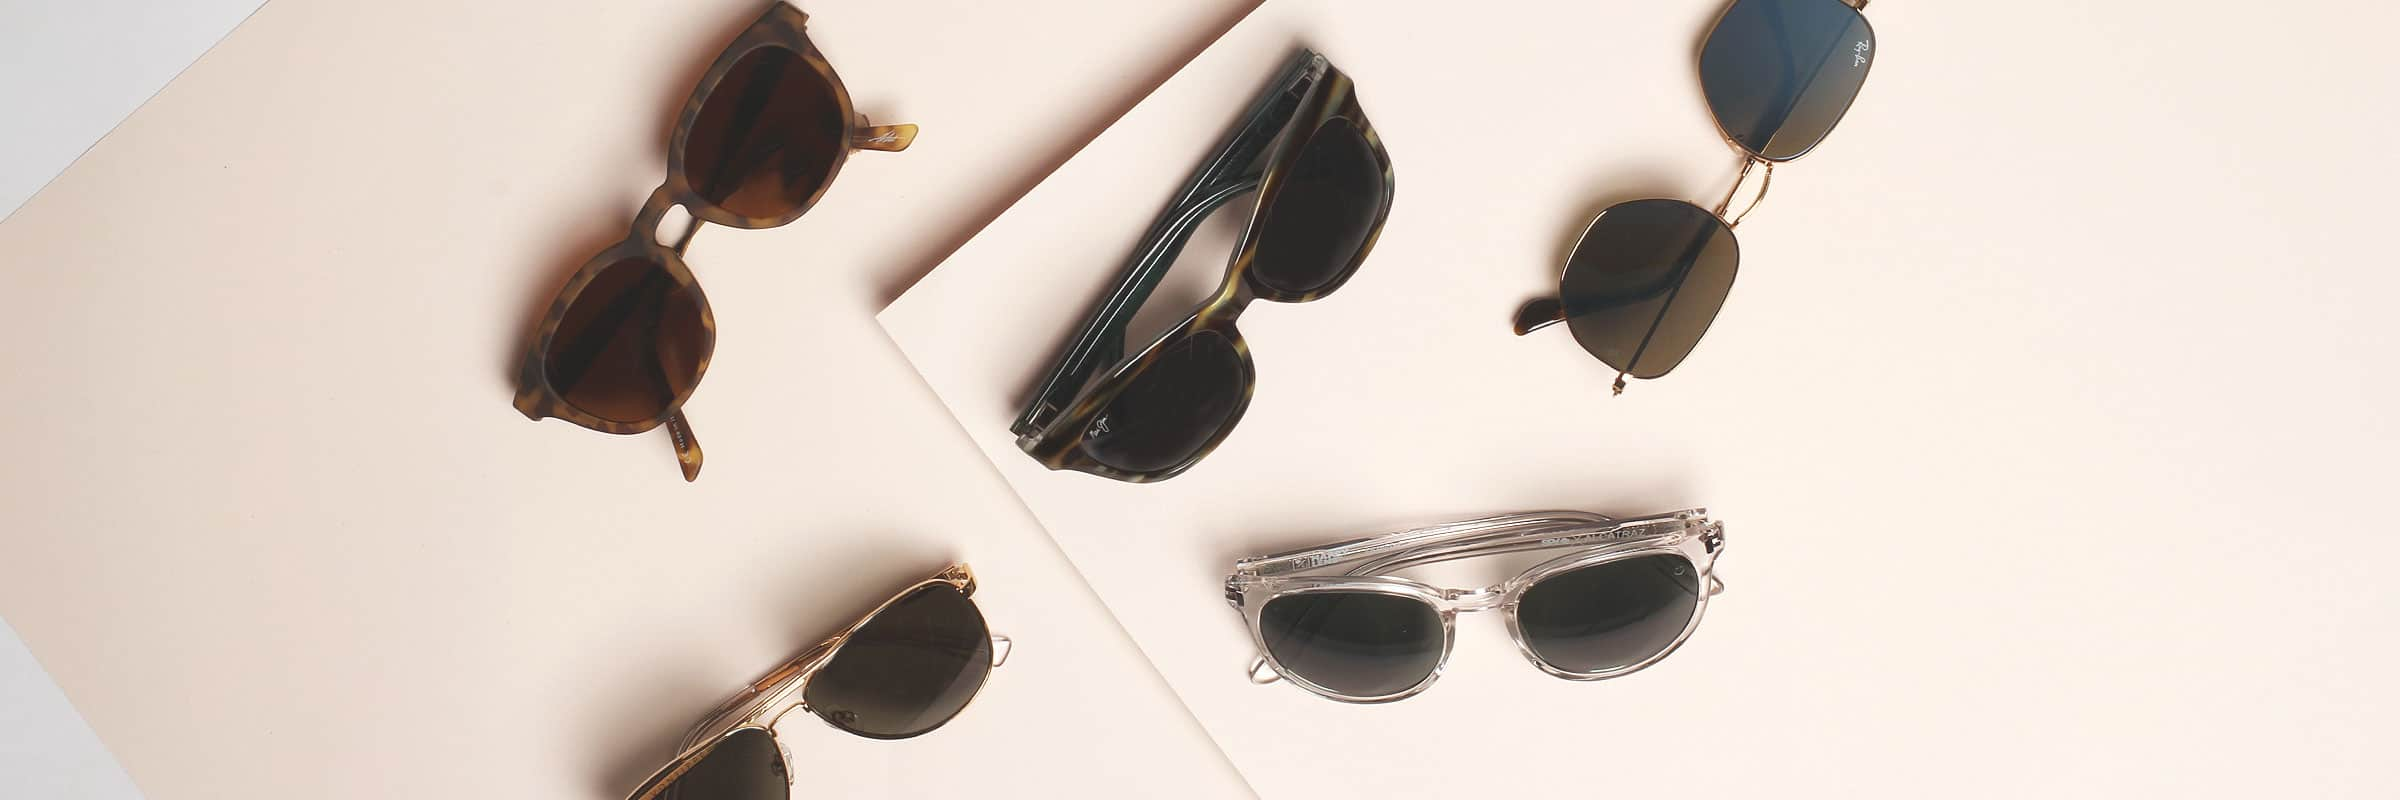 5 Tips for Buying the Perfect Sunglasses This Summer